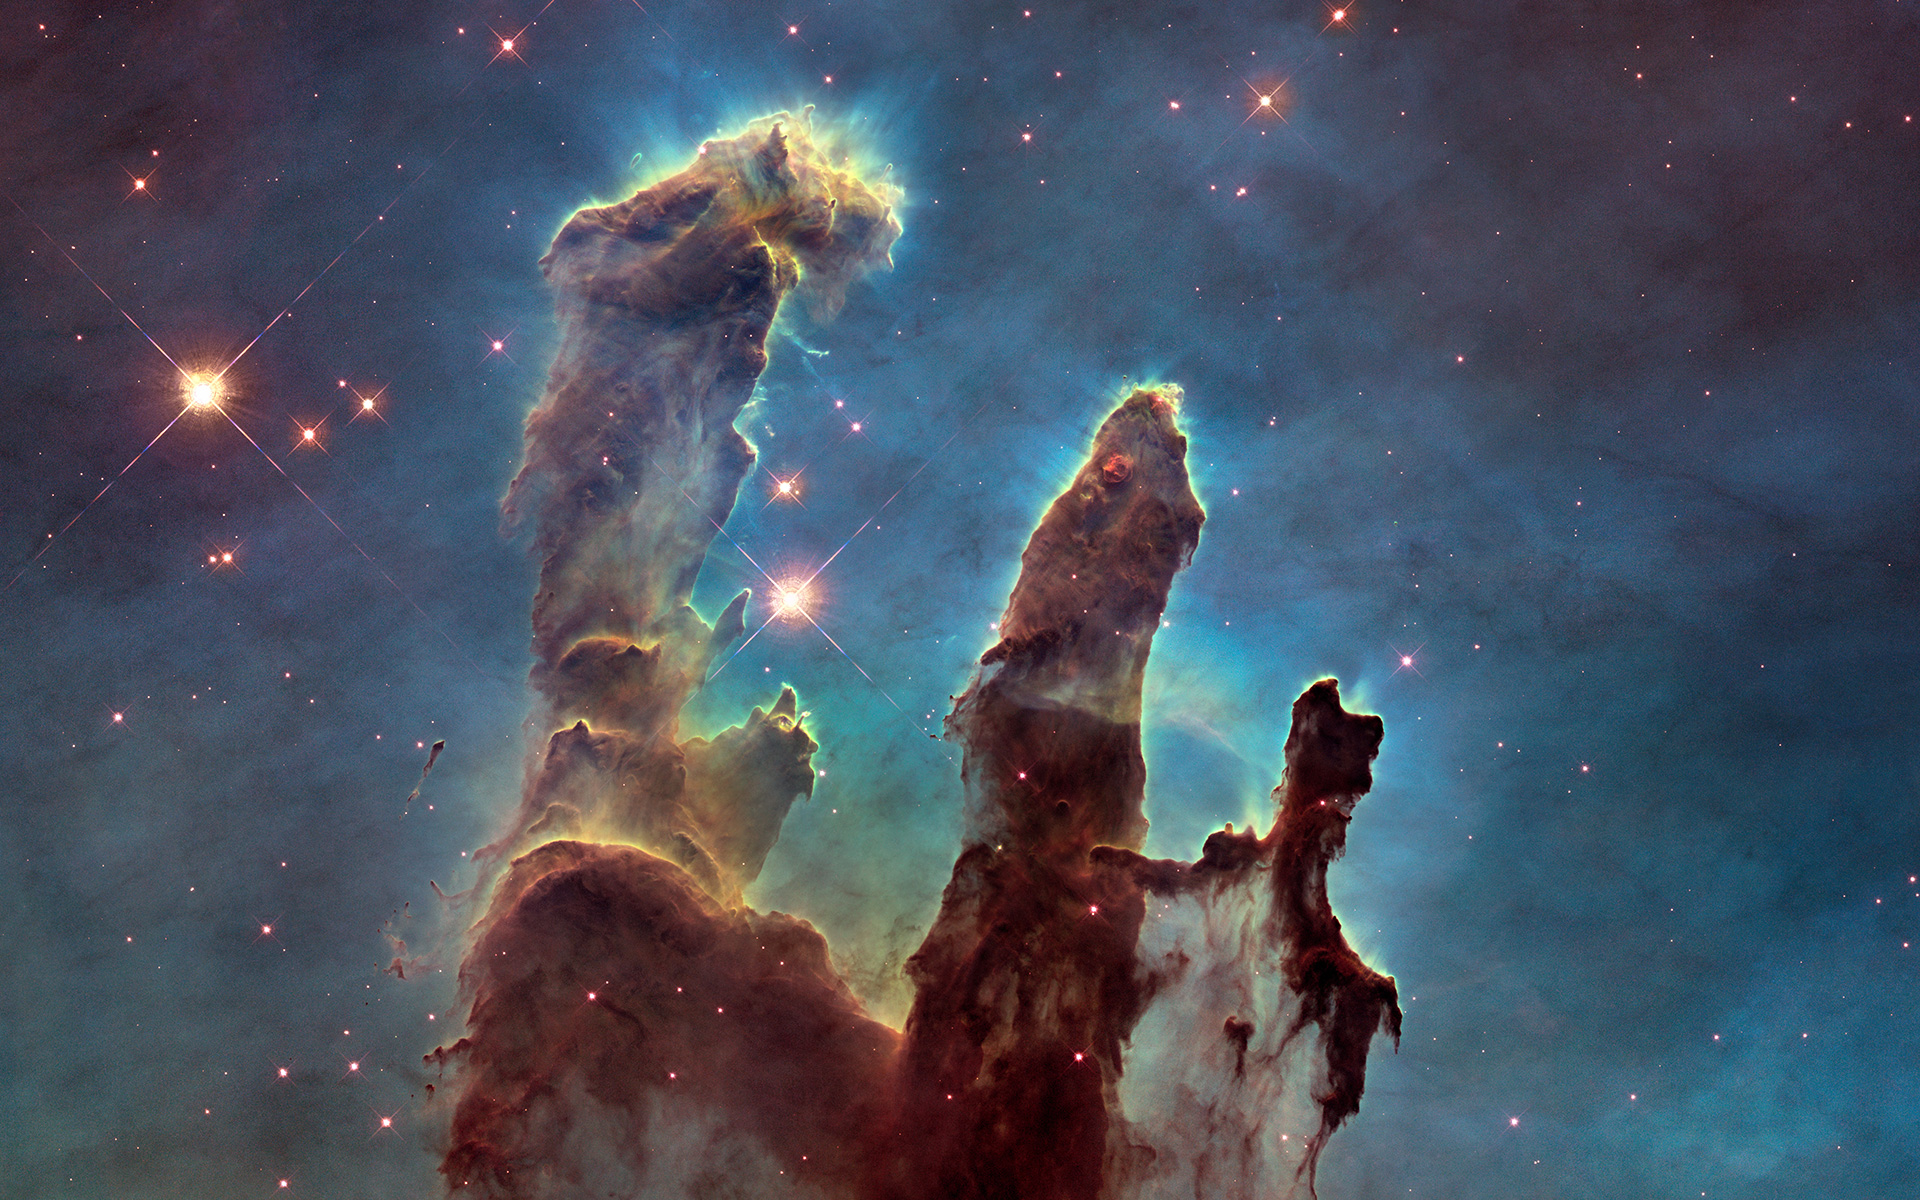 NASA (Jeff Hester and Paul Scowen) - Pillars of Creation - Nebuloasa Aquila, Via Lattea (1995) cult space foto famosa foto telescopio hubbard spazio cultstories cult story cult stories cultstories cinema cult story cultstory art culture music ipse dixit aneddoti citazioni frasi famose aforismi immagini foto personaggi cultura musica storie facts fatti celebrità vip cult n.a.s.a. music n & a s.a.c n.a.s.a.p n.a.s.a u.s.a n.a.s.a. gifted n a s a band n.a.s.a.l n.a.s.a hide tropkillaz remix n.a.s.a.r.a n a s a hide n.a.s.a hide n.a.s.a music n.a.s.a gifted n.a.s.a lyrics n.a.s.a meaning n.a.s.a hide lyrics n.a.s.a kanye n.a.s.a feat kanye west lykke li santigold - gifted (the aston shuffle remix) n.a.s.a facts n.a.s.a underachievers n.a.s.a album nasa ads nasa asteroid nasa ames research center nasa apod nasa app nasa apollo 11 nasa apollo nasa aircraft nasa asteroide 2013 a nasa e 2012 a nasa e nibiru a nasa 2012 a nasal dilator a nasa journal a nasa e o fim do mundo a nasa confirma a nasal spray a nasal cannula a nasal voice nasa moteur à distorsion visita à nasa travailler à nasa nasa à houston visiter la nasa à houston nasa planeta está à beira do colapso nasa 25 photos à couper le souffle la nasa à erfoud sonde nasale à oxygène nasaline à vendre casque à nasal heaume à nasal cervelière à nasal obstruction nasale à bascule canule nasale à oxygène spray nasal à la propolis n.a.s.a band n.a.s.a bbc news nasa blackout nasa black hole nasa blue marble nasa black marble nasa blue beam project nasa blog nasa bm1 nasa base b nasa nasa b52 nasa b52 008 stereo b nasa amphotericin b nasal nasa b 57 nasa b c c news b747 nasa nasa b-52h nasal b nasa curiosity nasa curiosity landing video nasa channel nasa comet ison nasa curiosity video nasa challenger nasa curiosity live nasa cape canaveral nasa cassini nasa consulting c nasal demons nasa c 2012 s1 nasa c 2012 s1 ison nasa c programming style guide nasa c/2011 l4 nasal cpap nasa c-20a c/2013a1 nasa nasa c coding style nasa c'est quoi nasa dryden nasa december 21 nasa dawn nasa dragon nasa dream chaser nasa database nasa daily picture nasa deep space network nasa data nasa documents d nasal septum d nasa kota bharu d nasa enterprise d nasa d nasa computer sales & service d nasa (m) sdn. bhd d.nasagdorj d'nasa cafe bandung nasa cafe nasa d wave nasa eclipse nasa earth observatory nasa earth nasa eyes on the solar system nasa education nasa edge nasa email nasa earth at night nasa earth images nasa earth live enasarco e nasale e nasa e nasal guarani ensalada nasa e fine del mondo nasa e nibiru nasa e 2012 nasa e ufo nasa e alieni nasa élet a marson a cosa é uma empresa nasa élő műholdképek nasa élő közvetítés nasa é uma farsa nasa éruption solaire nasa éclipse lunaire nasa éruption solaire 2013 nasa és a világvége nasa éclipse nasa cos'è nasa dov è cos è nasa endoscopia nasale è dolorosa fibroscopia nasale è dolorosa spray nasale è detraibile poliposi nasale è pericolosa aspiratore nasale è pericoloso bactroban nasale è mutuabile herpes nasale è contagioso poliposi nasale è un tumore aspiratore nasale è detraibile n.a.s.a full form nasa florida nasa facebook nasa fine del mondo nasa font nasa flickr nasa forum nasa foilsim f nasal spray f nasa nasa f18 nasa f 15 nasa f 104 nasa f 16 nasa f 104 starfighter nasa f-15 active f14 nasa nasa f-16xl n.a.s.a gifted mp3 nasa gangnam style nasa goddard space flight center nasa gallery nasa game nasa.gov curiosity nasa giss nasa galaxy nasa grail g nasal g nasa.gov g nasa tv g. nasari nasa g force test nasa g force machine nasa g.projector nasa g test nasa g force centrifuge nasa g 1.9 nasa home nasa hubble nasa hd nasa hubble images nasa hd camera nasa houston space center nasa harlem shake nasa human spaceflight nasa hurricane nasa houston texas h nasa h nasaruddin umar ma mp3 h. nasal h index nasa ads h.e.c nasal cream astro-h nasa pommade nasale h e c nasa h-r diagram dji naza h nasa h-tides n.a.s.a in 1958 i nasa computer nasa i need my space nasa i ufo nasa i need my space t shirt nasa i nibiru nasa i mars nasa i 2012 nasa i florida nasa i segreti nasa i 3 giorni di buio nasa ísland inga í nasa capacete nasa índio cocar branco nasa jpl nasa johnson style nasa johnson space center nasa juno nasa job nasa jpl curiosity nasa jacket nasa jpl live nasa jpl mars nasa johnson style lyrics j nasa nasa j2x nasa j track 3d satellite tracker nasa j track satellite tracking nasa j track 3d satellite nasa j-2x engine nasa j-track website nasa j.p.l nasa j-track nasa j track satellite n.a.s.a kanye west n.k.o spol.s r.o n a s z a k l a s a n a s i a k o facial filler nasa k-12 nasa k omega nasa k omega sst k10 nasa tdrs k nasa nasa k nasa k-4 nasa k-12 education nasza klasa nasa live nasa logo nasa live cam nasa live tv nasa light on mars nasa ladee nasa langley research center nasa live space cam nasa live satellite la n.a.s.a la n.a.s.a wikipedia l nasa l nasal or oral l nasal nasa l-1011 nasa l'uomo sulla luna nasa l'occhio di dio jack l nasar l'aspiratore nasale per neonati e bambini n.a.s.a mars nasa mars curiosity nasa marte nasa marine nasa moon nasa msl nasa museum nasa mars photos m nasale m nasal bilabial m. nasalis pars alaris sm nasarudin m nasab m nasaruddin is a nasal consonant m nasal spray m.nasalis wikipedia m nasar n.a.s.a news nasa nibiru nasa news 2012 nasa new horizons nasa news 2013 nasa neo nasa ned nasa night launch nasa ntrs nasa november 13 n nasale n nasa n nasale velare n nasal alveolar n nasale labiodentale n nasaki mobile n nasaki b2 n nasaki b2 price in pakistan n nasaki mobile price in pakistan n nasakl n.a.s.a online n a s a org n.a.s.a tv of the mars rover n.a.s.a pagina oficial n.a.s.a. spirit of apollo o nasale o nasa nasa o ring nasa o końcu świata nasa o fim do mundo nasa o koncu swiata w 2012 nasa o smaku sveta 2012 nasa o que significa nasa o smaku svijeta nasa o que esconde ó mládez nasa n.a.s.a phone number n a s a pl n a s d a p p nasal drip p nasal spray nasa p 3b nasa p nasa p-3 orion nasa p-3b aircraft f&p nasal pillows p t nasaral kekal medal nasa p 3 nasal p n a s a que significa n.a.s.a que es n.a.s.d.a.q q nasa trading company qatar q nasa q-nasa trading q nasal q nasal spray q nasal coupon q nasal side effects q nasal inhaler q nasa trading company q nasal spray coupon n.a.s.a remix n.a.s.a rapper e.n.a.s.a.r.c.o n a s c a r r nasa r. nasalis externus ransaar.tk r nasal r/nasa reddit nasa r d nasa r d budget nasarr r 14a radar r 96 spray nasale r/avamys spray nasale n.a.s.a song n.a.s.a stands for nasa space center nasa satellite soho nasa nasa space shuttle nasa solar system nasa space center houston nasa space nasa store s nasa s nasazením života s nasadením života s nasadenim zivota csfd s nasal emission s nasri s nasar a beautiful mind s nasazením života dvd nasa s d o nasa s'cool n.a.s.a the underachievers n.a.s.a the underachievers lyrics n.a.s.a the underachievers download nasa tv nasa tv live nasa twitter nasa tv hd nasa television nasa t shirt nasa tech briefs t-nasa t nasal drip t-nasal nasa t-38 nasa t shirt uk nasa t v nasa t shirt amazon nasa t-shirt official nasa t shirt ebay n.a.s.a underachievers lyrics n.a.s.a underachievers download u nasale u nasa unasam u nasady u nasady słownik u nasarawa u nasady co to znaczy nasa u.s.a ustream nasa nasa u na ang lahat n.a.s.a. tv nasa vegas hotel nasa video nasa voyager nasa venus nasa visitor center nasa visible earth nasa video download nasa voyager recordings saturn v nasa t v nasa ares v nasa iv&v nasa gta v nasa saturn v nasa rocket nbu osiyo v nasaf qarshi ii nasa v nelson nasa v nelson case brief n.a.s.a wiki n.a.s.a website n a s a wikipedia n.a.s.a. way down lyrics n.a.s.a. - whachadoin n a s a what does it stand for n.a.s.a. weather w nasa praca w nasa nasa w kierunku ziemi pędzi potężna asteroida nasadzenia w ogrodzie nasadzenia w pojemnikach nasa w polsce nasa w kierunku ziemi pędzi potężna asteroida informacje wp.pl nazad v sssr online nasadzenia w pasie drogowym nasadzenia w zamian za wycinkę nasa x-43 nasa x planes nasa x-15 nasa x nasa x files nasa x1 nasa x33 nasa x 48 nasa x1 exoskeleton nasa x 38 x nasa x nasa plane nasa x 33 nasa x points nasa youtube nasa youtube video nasa y plus calculator nasa iyo na ang lahat lyrics nasa y el fin del mundo nasa iyo na ang lahat chords nasa y los tres dias de oscuridad nasa y el 21 de diciembre nasa yuwe nasa y sus secretos y nasa nasa y plus nasa y el 21 de diciembre 2012 nasa y los 3 dias de oscuridad nasa y el 2012 nasa y el fin del mundo 2012 nasa zero gravity nasa z2 nasa z-1 nasa zbulimet e fundit nasa z2 suit nasa zodiac nasa zero gravity job nasa zero gravity chamber nasa zero gravity research nasa zero gravity pen z nasal spray nasa z-2 spacesuit nasa z 2 suit nasa's z 1 space suit nasa z 1 suit nasa's z-1 space suit nasa z-2 vote nasa z 1 space suit nasa z suit nasa 0 gravity nasa 03/12 nasa 05-209 nasa 0 gravity room nasa 04 dic 2012 nasa 086-a-08 nasa 0 sík nasa 04 de diciembre nasa 0 gravity pen nasa 02 strikers aspiratore nasale 0 mesi nasarox 0 05 nasan 0 1 orrspray nasa 0 gravity training nasa 0 gravity plane nasa 0 gravity study n.a.s.a 1958 nasa 12/21/12 nasa 13 november nasa 13th nasa 1969 nasa 1986 nasa 12/12/12 nasa 15 febbraio 2013 nasa 13 november 2013 nasa 13 novembre #1 nasal decongestant 1 nasa voyager 1 nasa apollo 1 nasa z-1 nasa viking 1 nasa pioneer 1 nasa melanotan 1 nasal spray ares 1 nasa luna 1 nasa nasa 2012 nasa 21 dicembre 2012 nasa 21 december nasa 2012 tempesta solare nasa 2012 da14 nasa 21/12/12 nasa 2012 blackout nasa 2012 video nasa 25 hours of thunderhill 2013 nasa 21 december 2012 2 nasa 2 nasal bones 2 nasa technology spin-offs found in everyday life 2. nasa membenarkan matahari akan terbit dari barat 2 nasal cavities 2 nasa mars probes 2* nasa flora hotel nasams 2 range nasa 2 months in bed nasa 2 new planets nasa 360 nasa 3d models nasa 3d printer nasa 3d nasa 3 giorni di buio nasa 3d solar system nasa 3d model nasa 33 nasa 3d images nasa 3d pizza nasa 4 dicembre nasa 4 dicembre 2012 nasa 4 december nasa 45 nasa 4k video nasa 4k nasa 4 december 2012 nasa 457m hall thruster nasa-457 m nasa 46 gt nasa 50 years of space exploration nasa 5000 bed nasa 51 nasa 50 nasa 5 giugno 2012 nasa 5 december 2012 nasa 5020 nasa 50th nasa 50 anniversary nasa 502 5 nasa inventions you won't believe 5 nasa space shuttles 5 nasa space shuttles names 5 nasa spinoffs $5 nasacort coupon 5 nasa missions 5 nasa inventions nasa 5 dhjetor 6. nasa the cia and the peace corps all (2 points) 6 nasa space shuttles 6 nasa space shuttles names nasa 6 october nasa 6 ottobre nasa 6 minutes of terror nasa 6 august 2012 nasa 6 november voyager 6 nasa october 6 nasa discovery nasa 844 nasa 8086 nasa 803 nasa 817 nasa 872 nasa 809 nasa 831 nasa 804 nasa 87 days in bed nasa 87 days 8 nasab penerima zakat nasalloy 8 super 8 nasa apollo 8 nasa windows 8 nasa app windows 8 nasa misse-8 nasa nasa 8 dollar gemini 8 nasa building 8 nasa nasa 928 nasa 97 nasa 911 photos nasa 99942 apophis nasa 90 day report nasa 99942 nasa 9 nasa 95th percentile male nasa 952 nasa 9-12 9 nasal subunits nasa 9 coefficient polynomial mariner 9 nasa falcon 9 nasa apollo 9 nasa hataf 9 nasar venera 9 nasa level 9 nasa tour reviews nasa 100 year starship nasa 100 rules for project managers nasa 100 year starship project nasa 1080p nasa 1080p video nasa 1012 nasa 1080p wallpapers nasa 1080p video download nasa 100 lessons learned nasa 10k lay in bed 10 nasa inventions 10 nasa inventions used everyday nasa as10 10 nasa inventions you might use every day 10 nasa centers 10 nasa inventions we use everyday 10 nasa spinoffs 10 nasa facts 10 nasa field centers 10 nasa inventions we might use